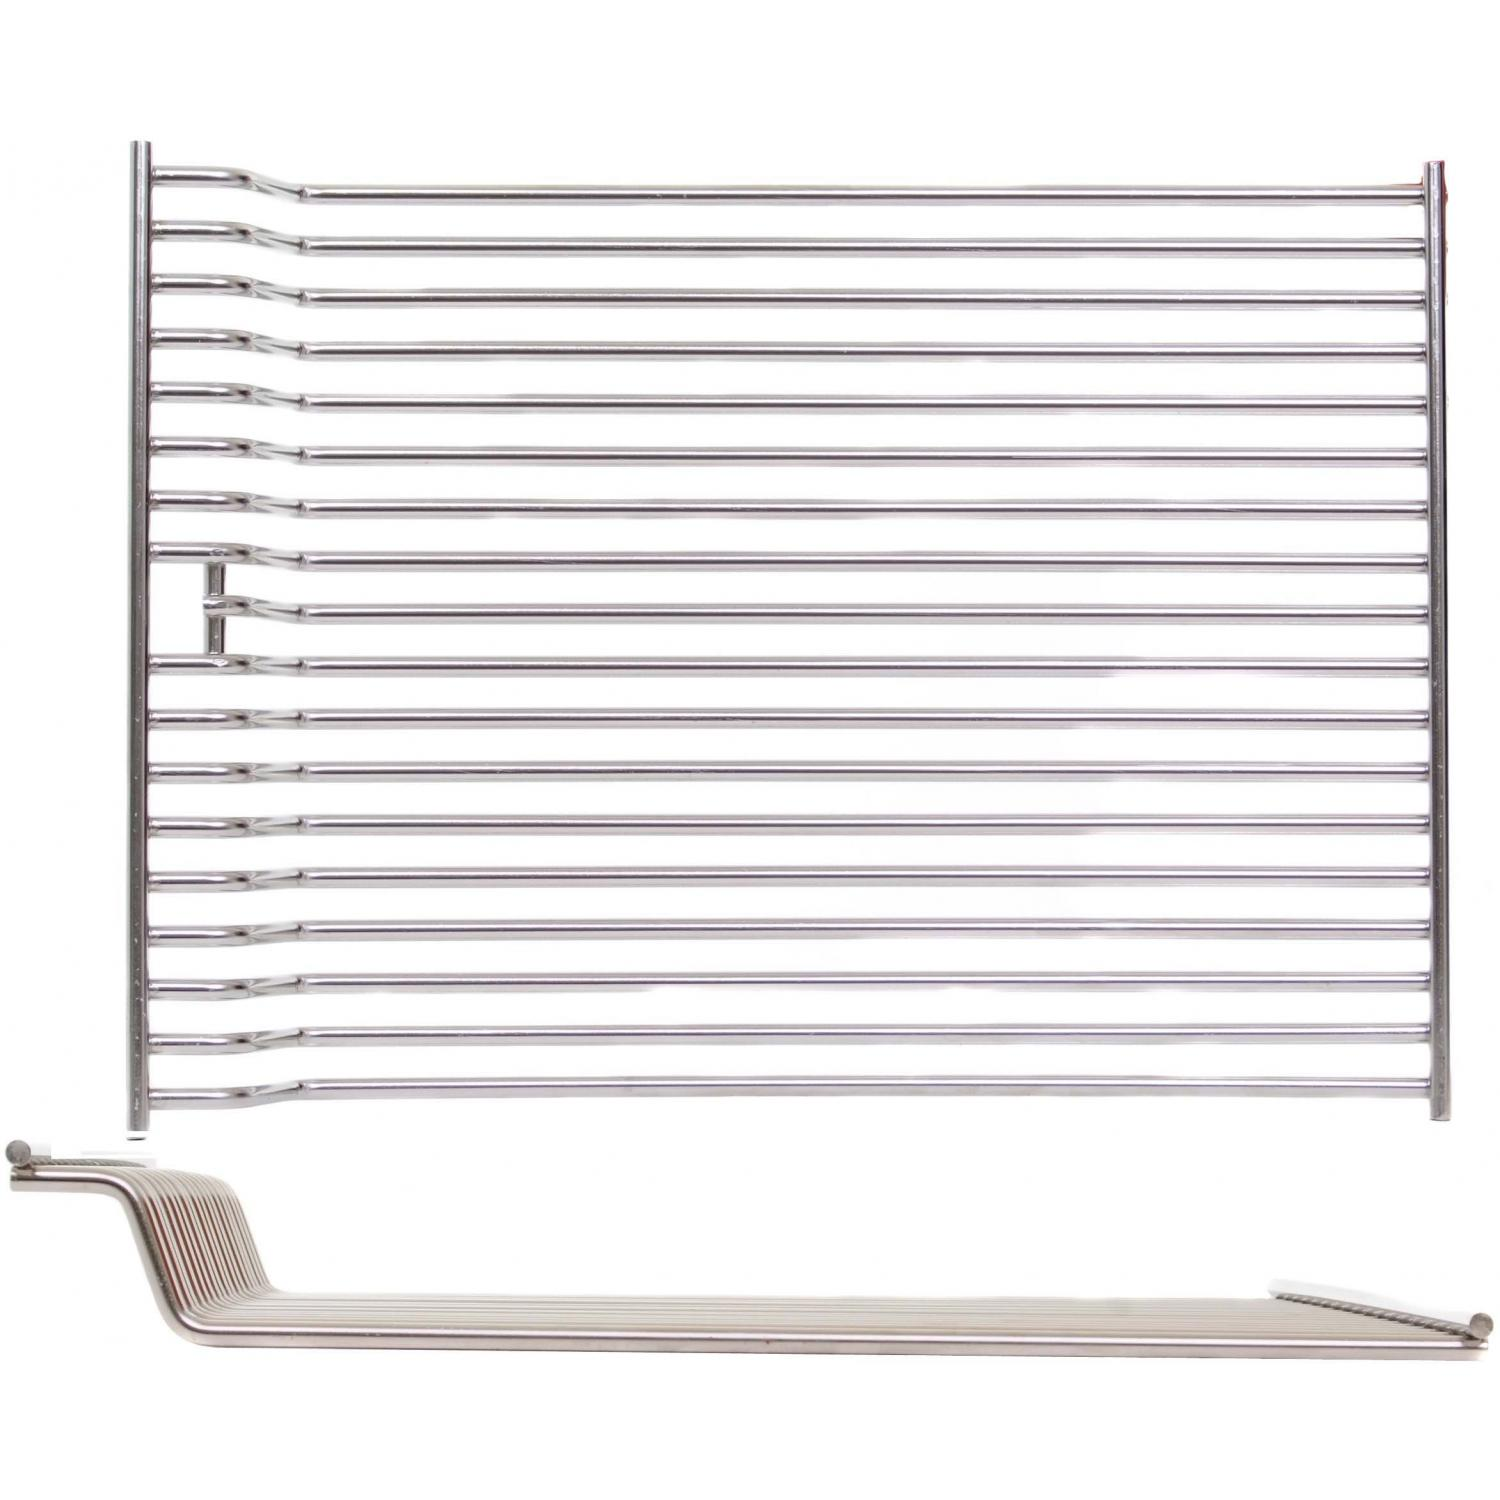 Broilmaster Stainless Steel Rod Cooking Grids For Size 3 Gas Grills (Set Of 2) 2526486